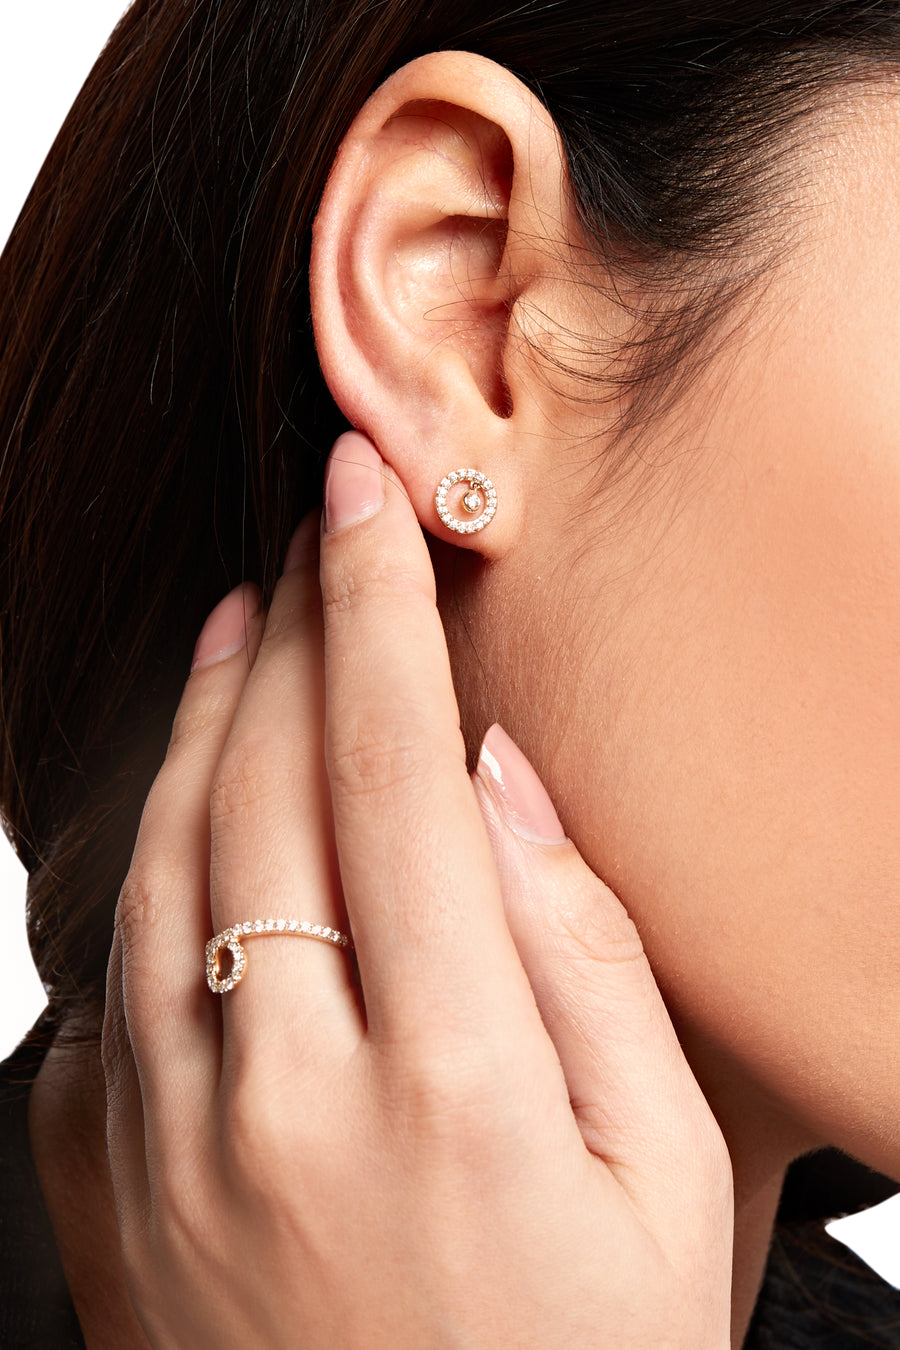 Model wearing Lark & Berry's Modernist Sun Shimmer Stud Earrings with 14K yellow gold and lab-created diamonds.